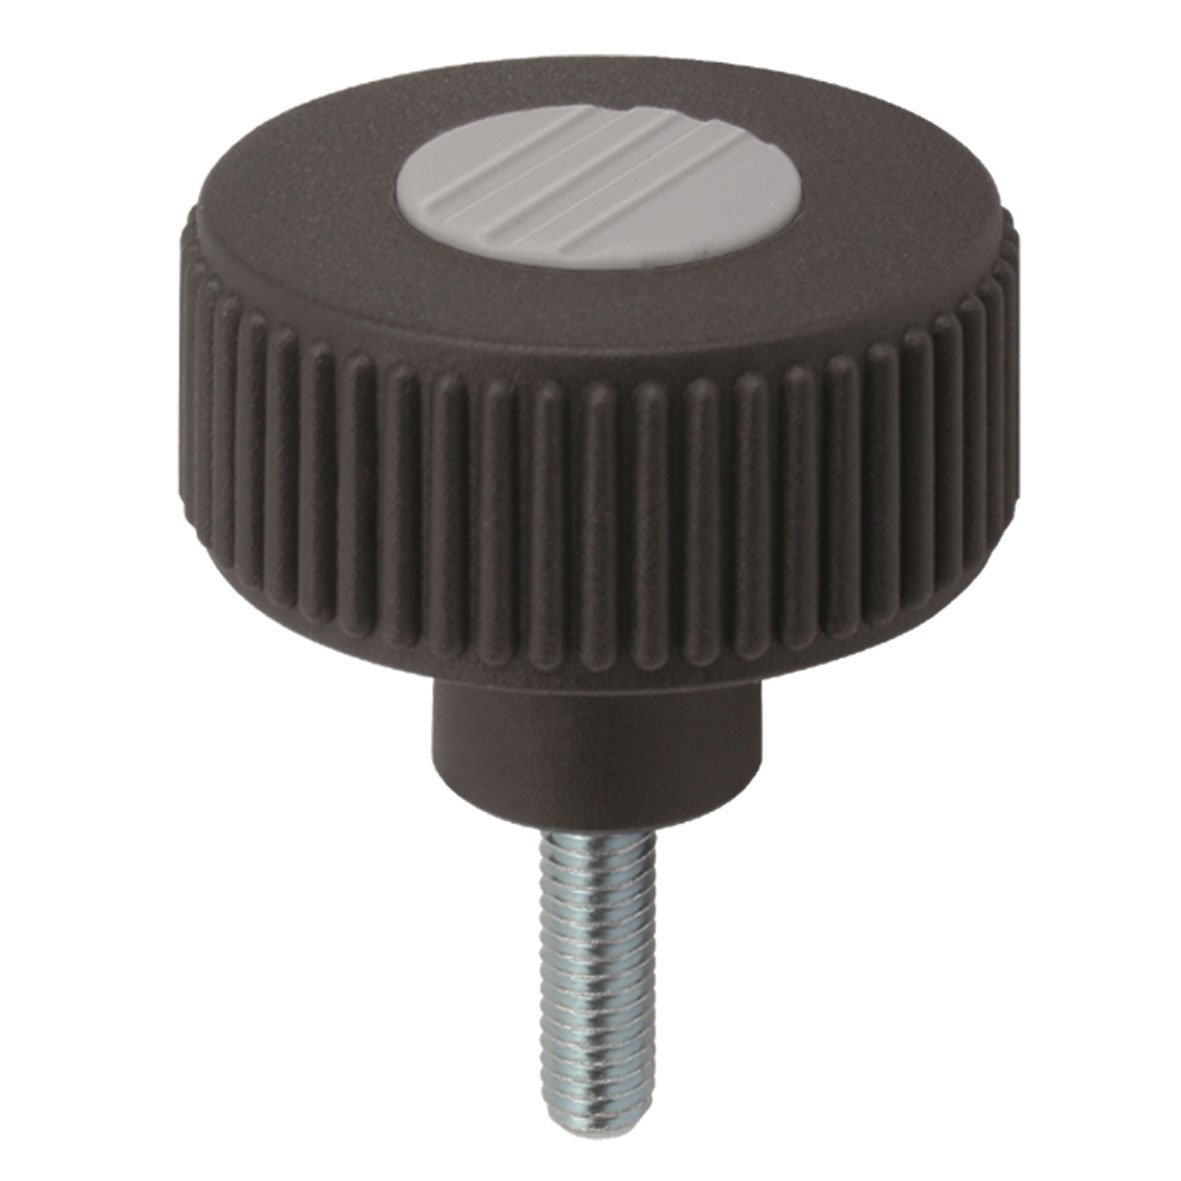 M8 Male 96 mm Height Kipp 06267-52086X60 Thermoplastic Novo-Grip Tapped Through Hole Knurled Wheel Pack of 10 50 mm Diameter Red 60 mm Screw Length Stainless Components Size 2 Style L